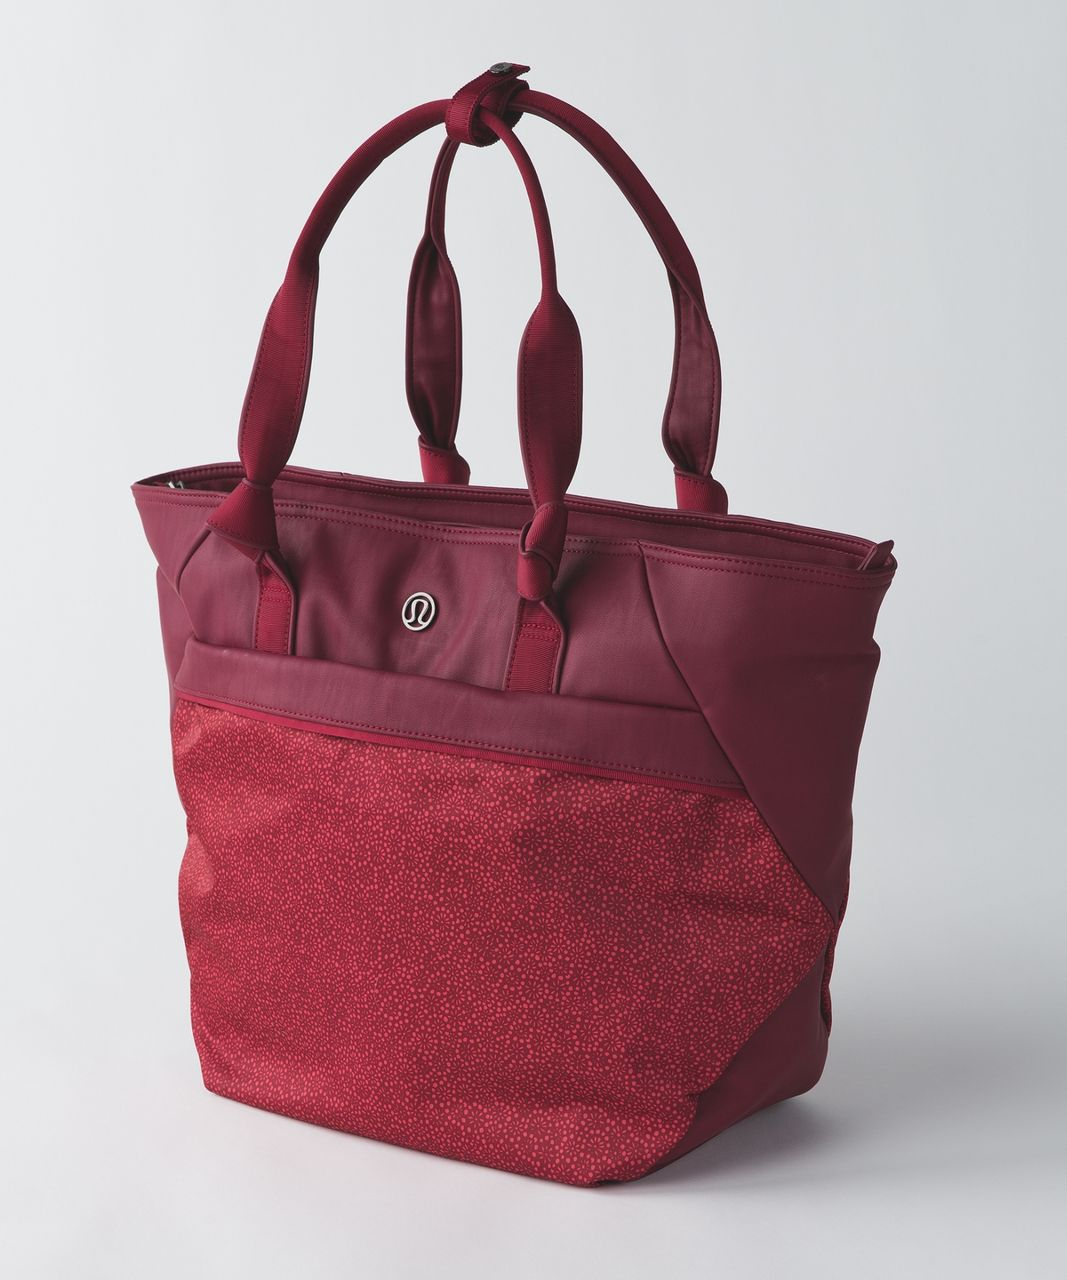 0334d46aa0 Lululemon Everything Bag - Rosewood / Freckle Flower Fireside Red Rosewood  - lulu fanatics